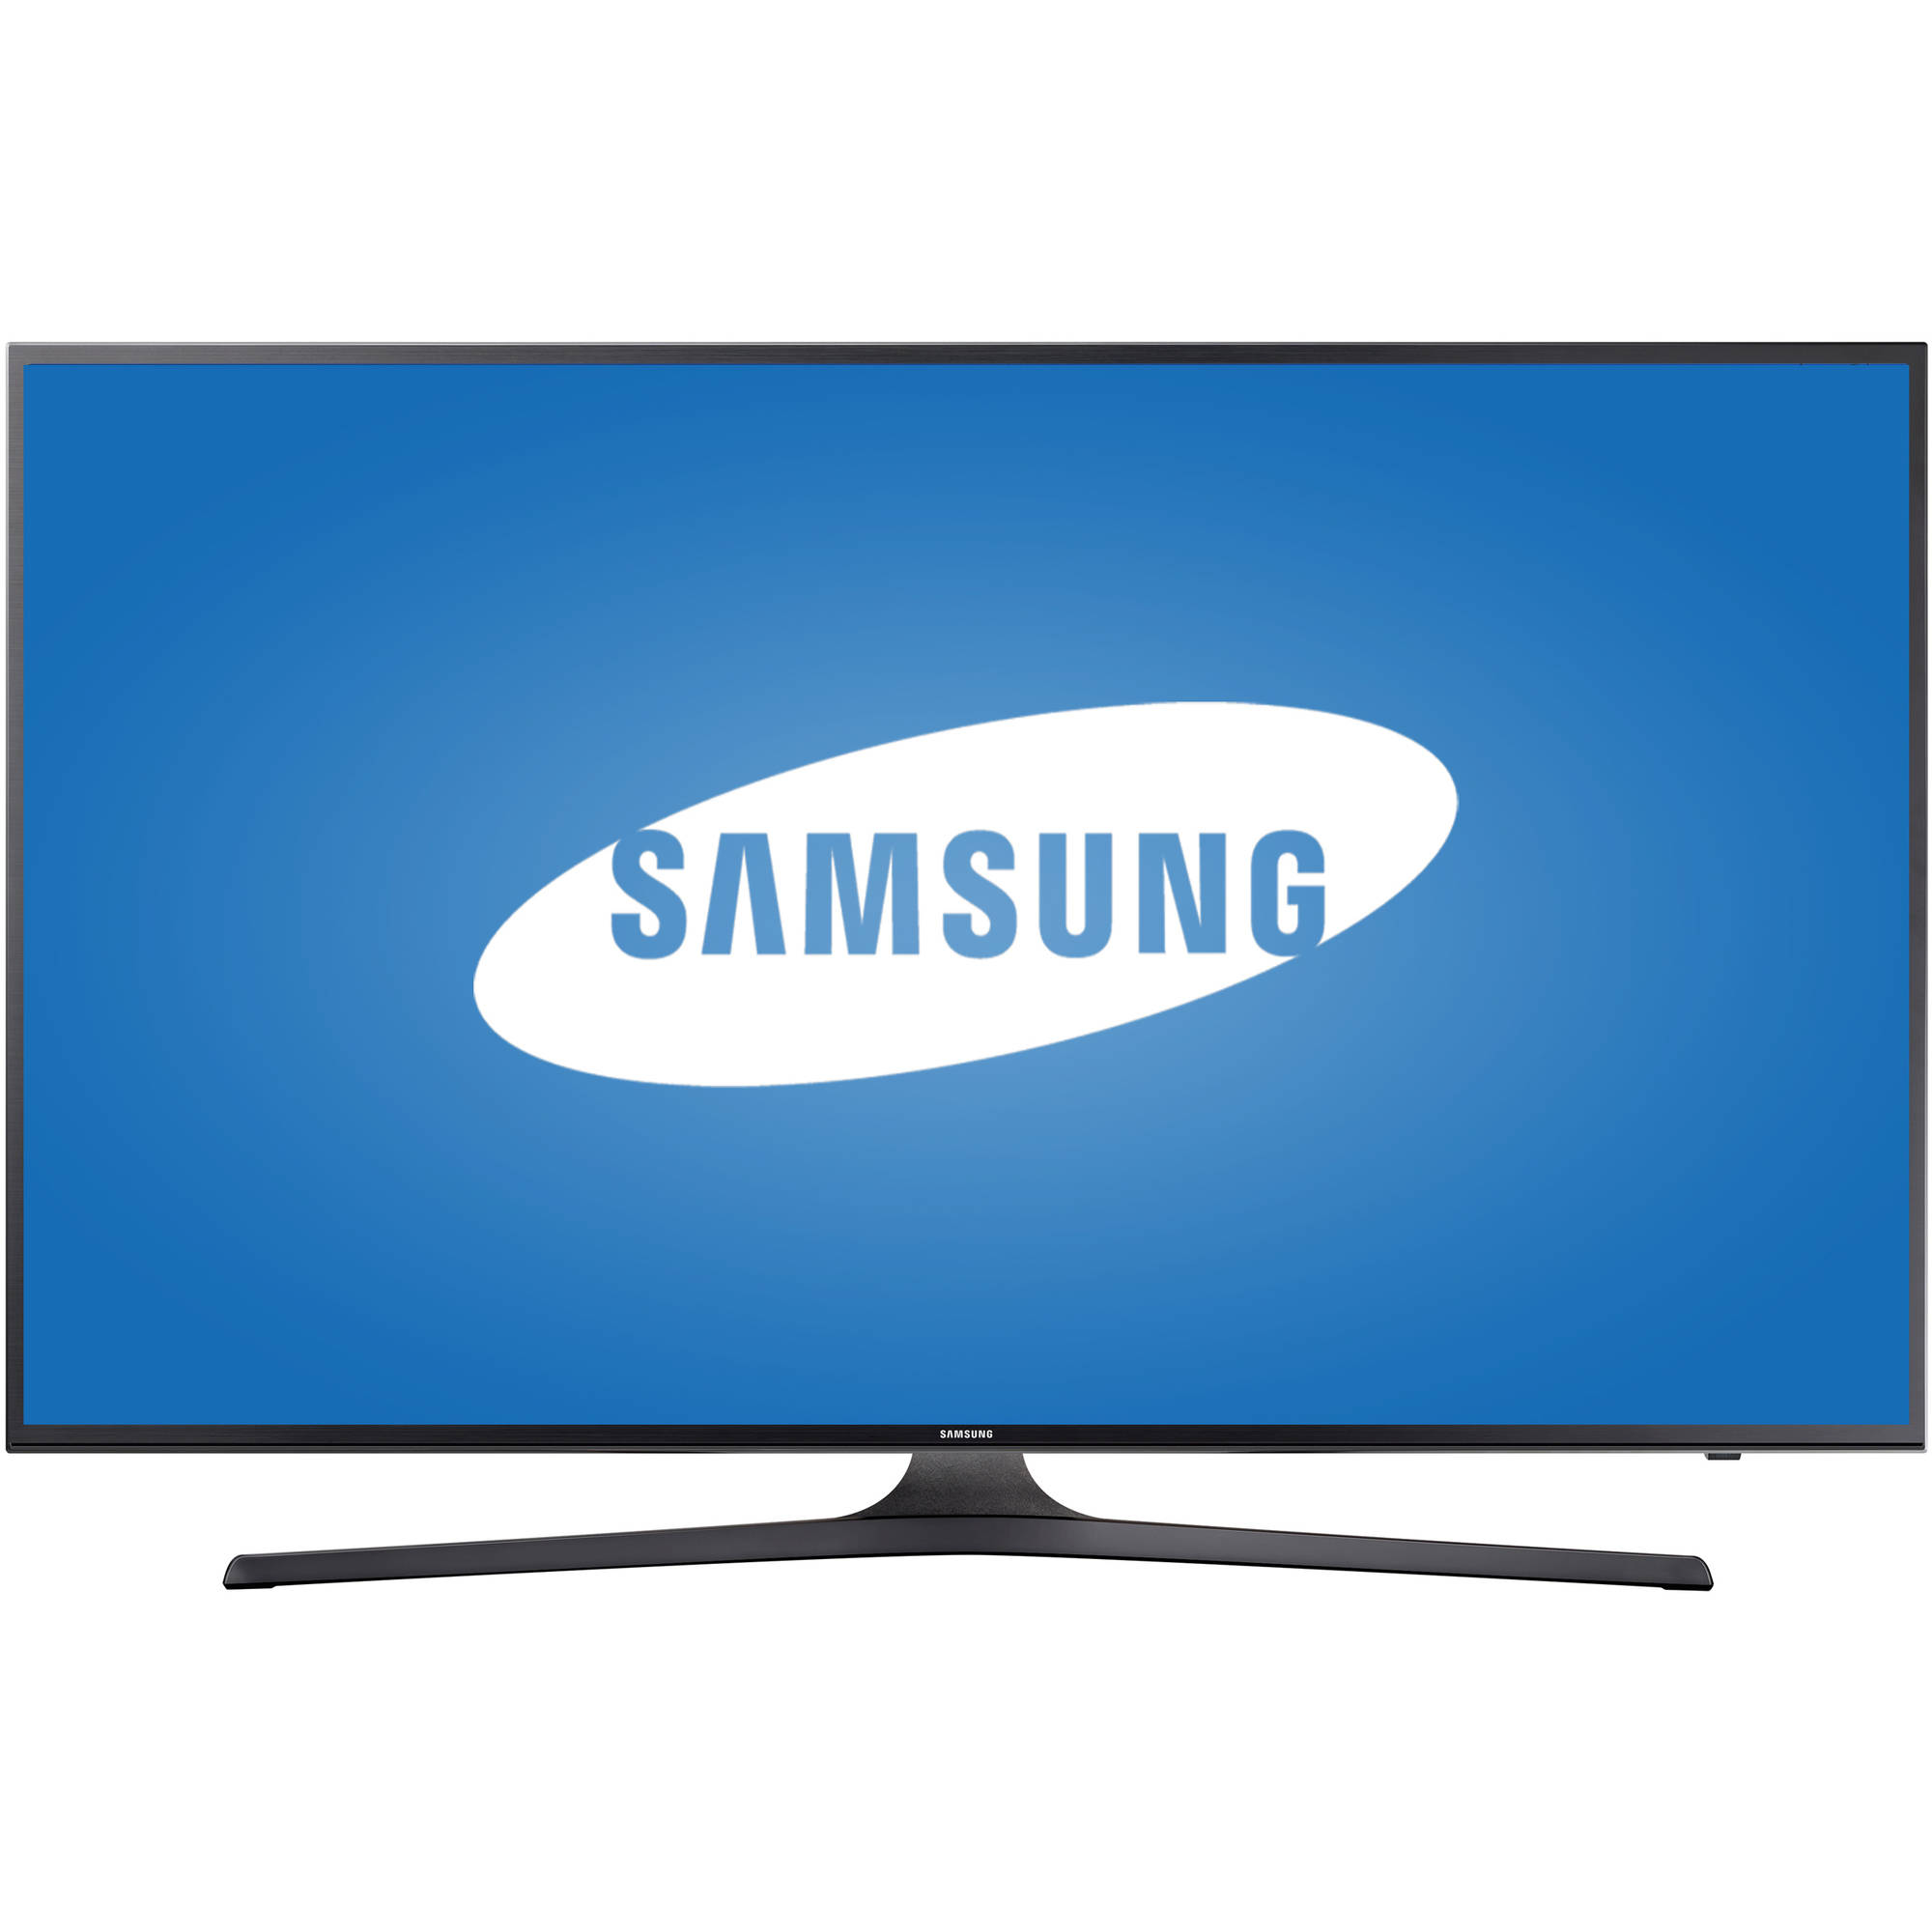 "SAMSUNG 55"" 6300 Series - 4K Ultra HD Smart LED TV - 2160p, 120MR (Model#: UN55KU6300)"